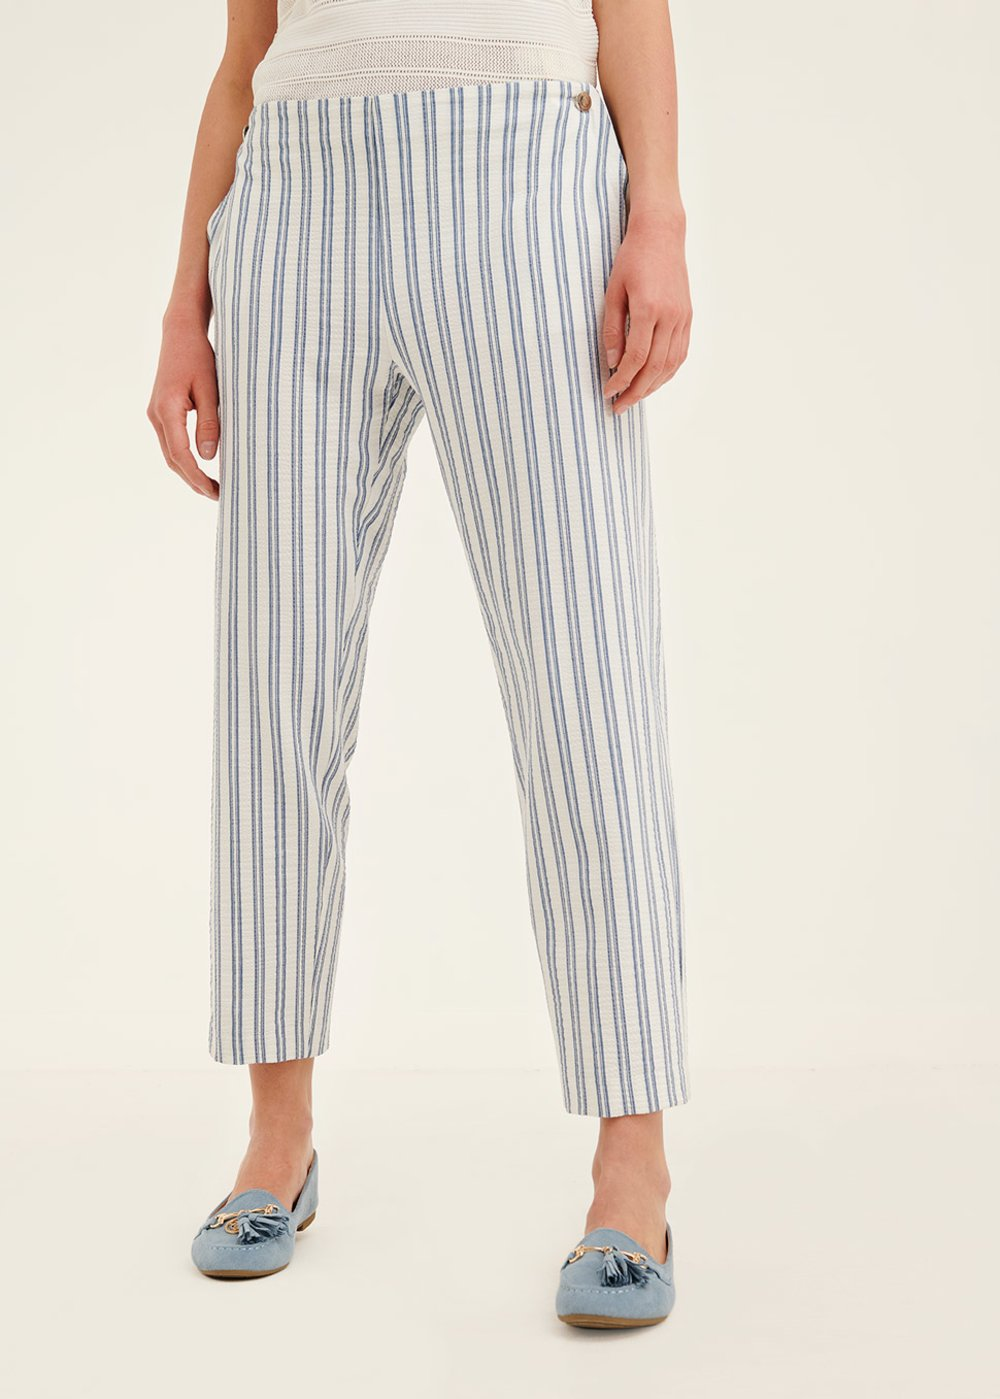 Cara trousers with vertical stripes - Blue / White Stripes - Woman